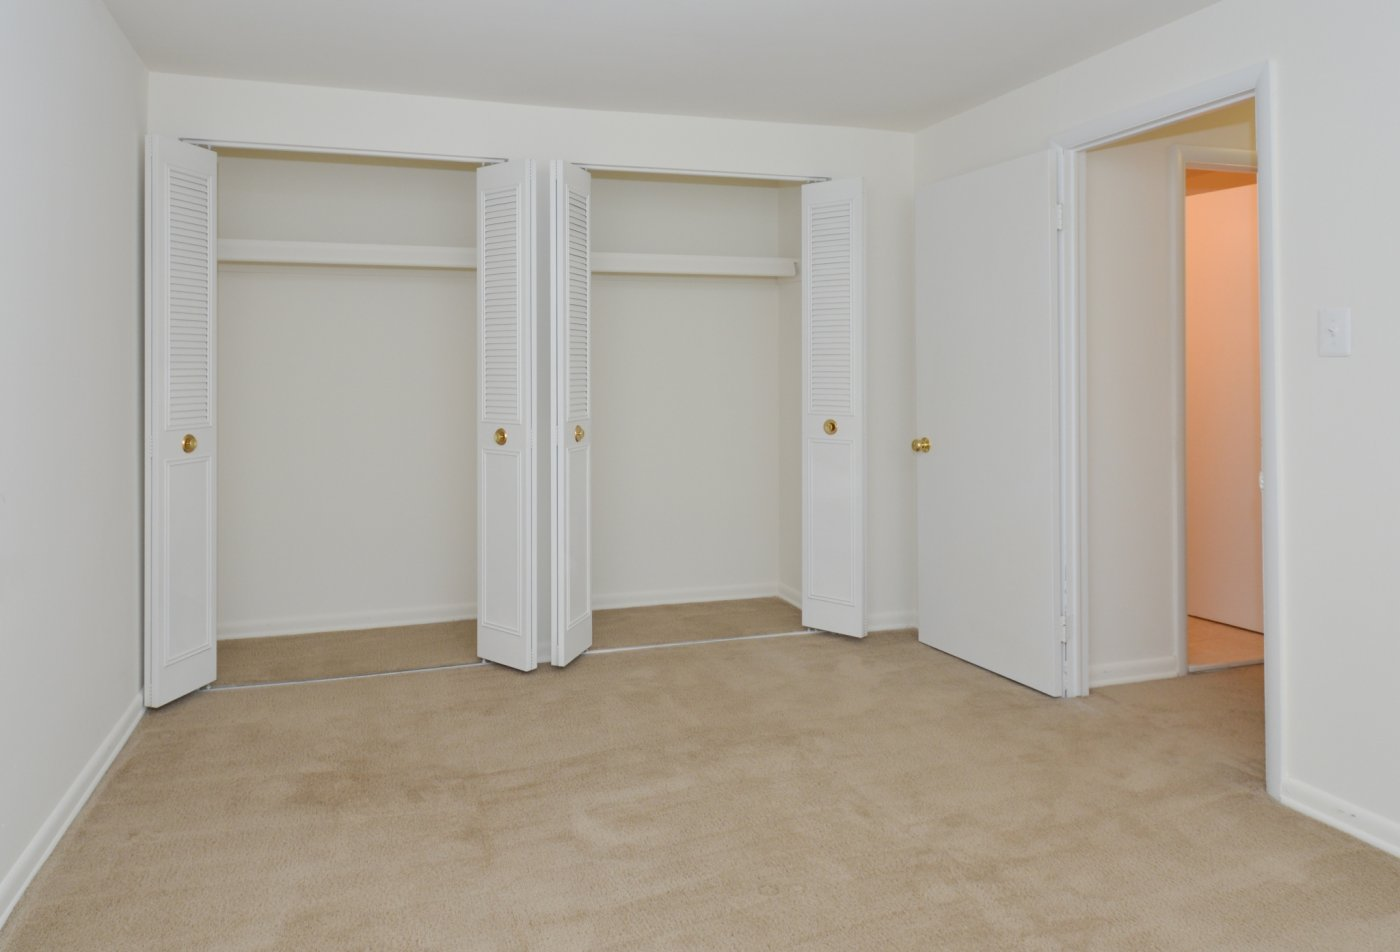 Spacious Closet   Apartments in Boothwyn, PA   Boothwyn Court Apartments